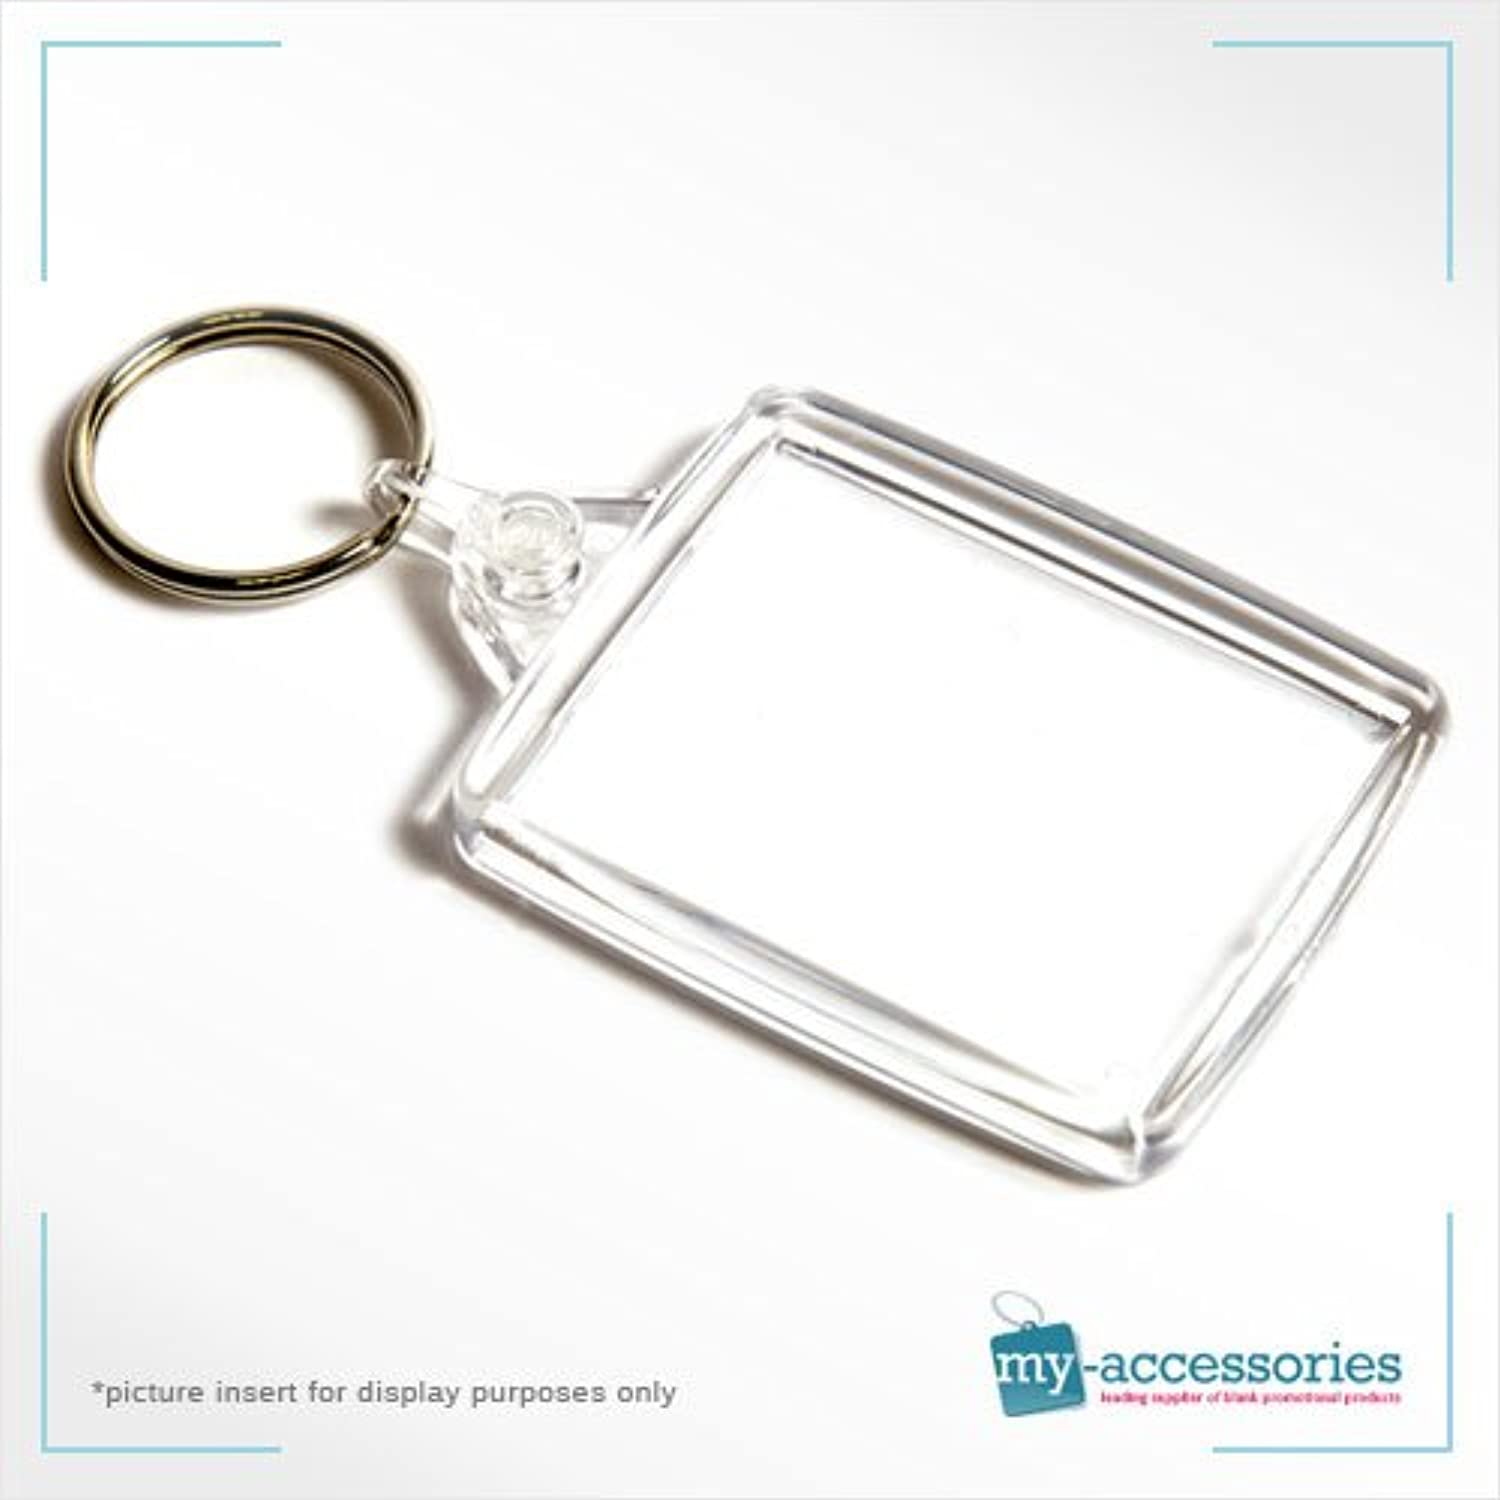 Blank Keyring Keychain w  (CLEAR) Linking Ring for Business Promotion   Gifts - Plastic 45x35mm (A502) - Pack of 100